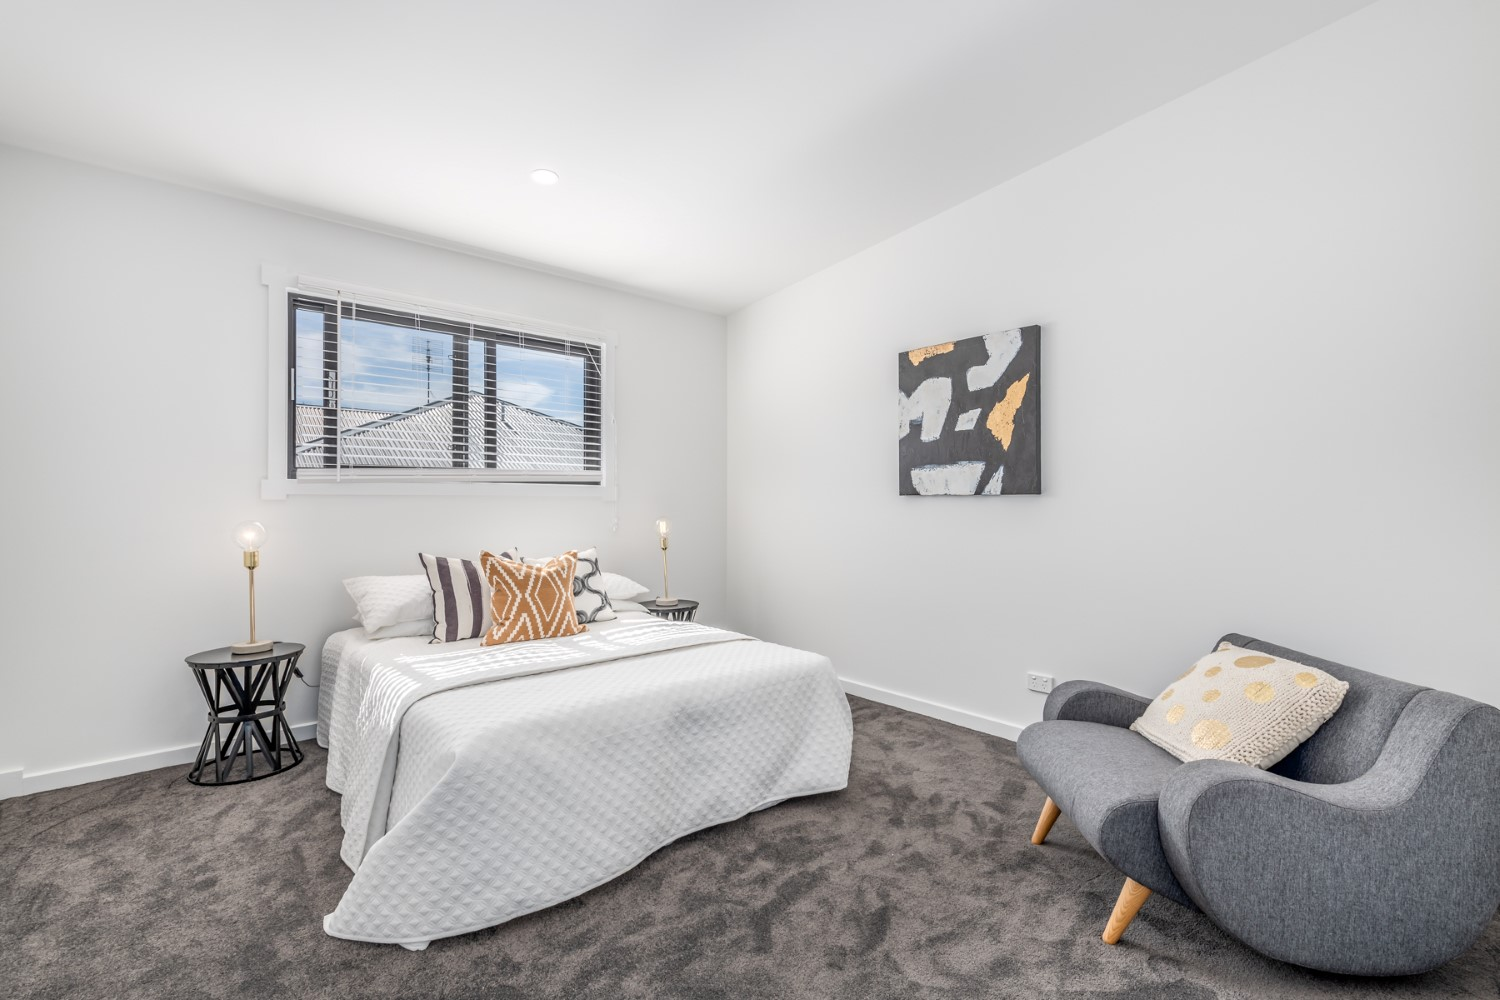 Renovated Family Home | New Lambton - https://www.peonyandsilk.com.au/wp-content/uploads/2019/02/Peony-and-Silk-Renovated-Family-Home-New-Lambton-4.jpg